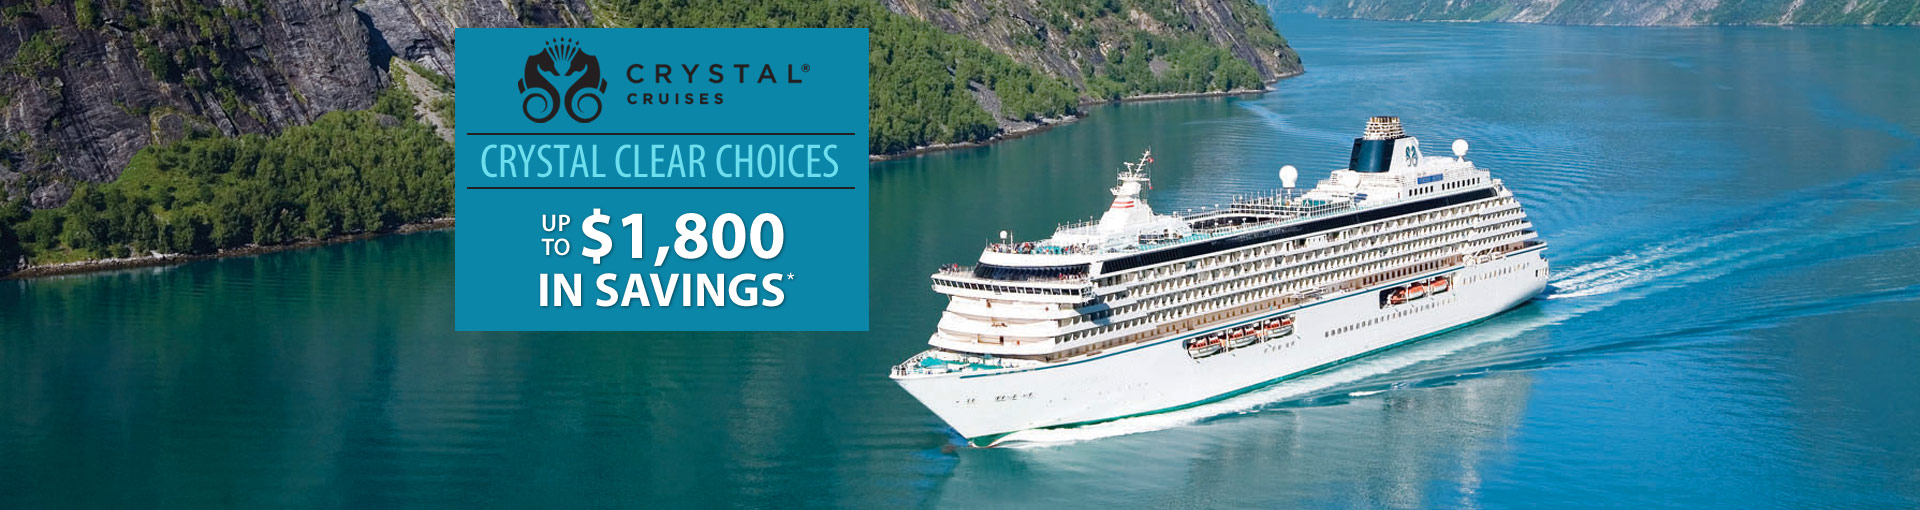 Crystal Cruises: Crystal Clear Choices Sale